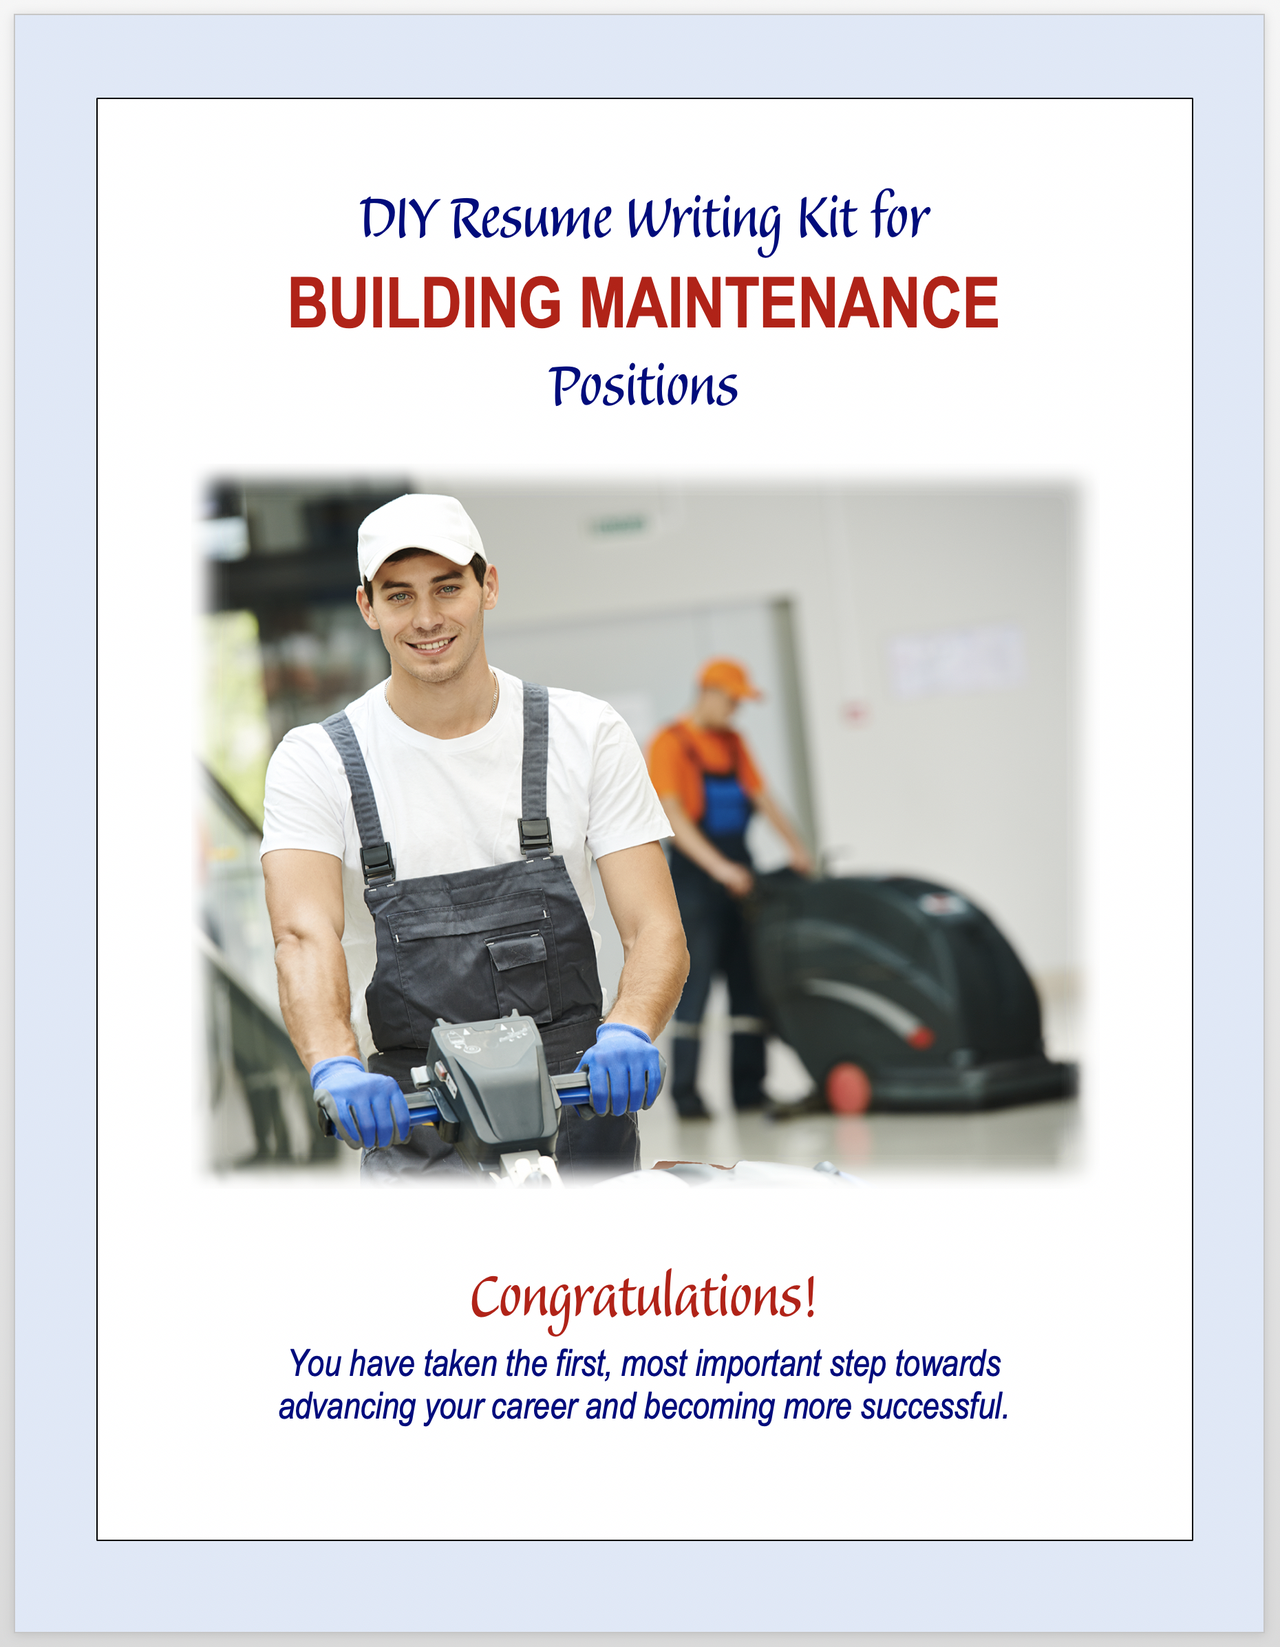 building maintenance.png